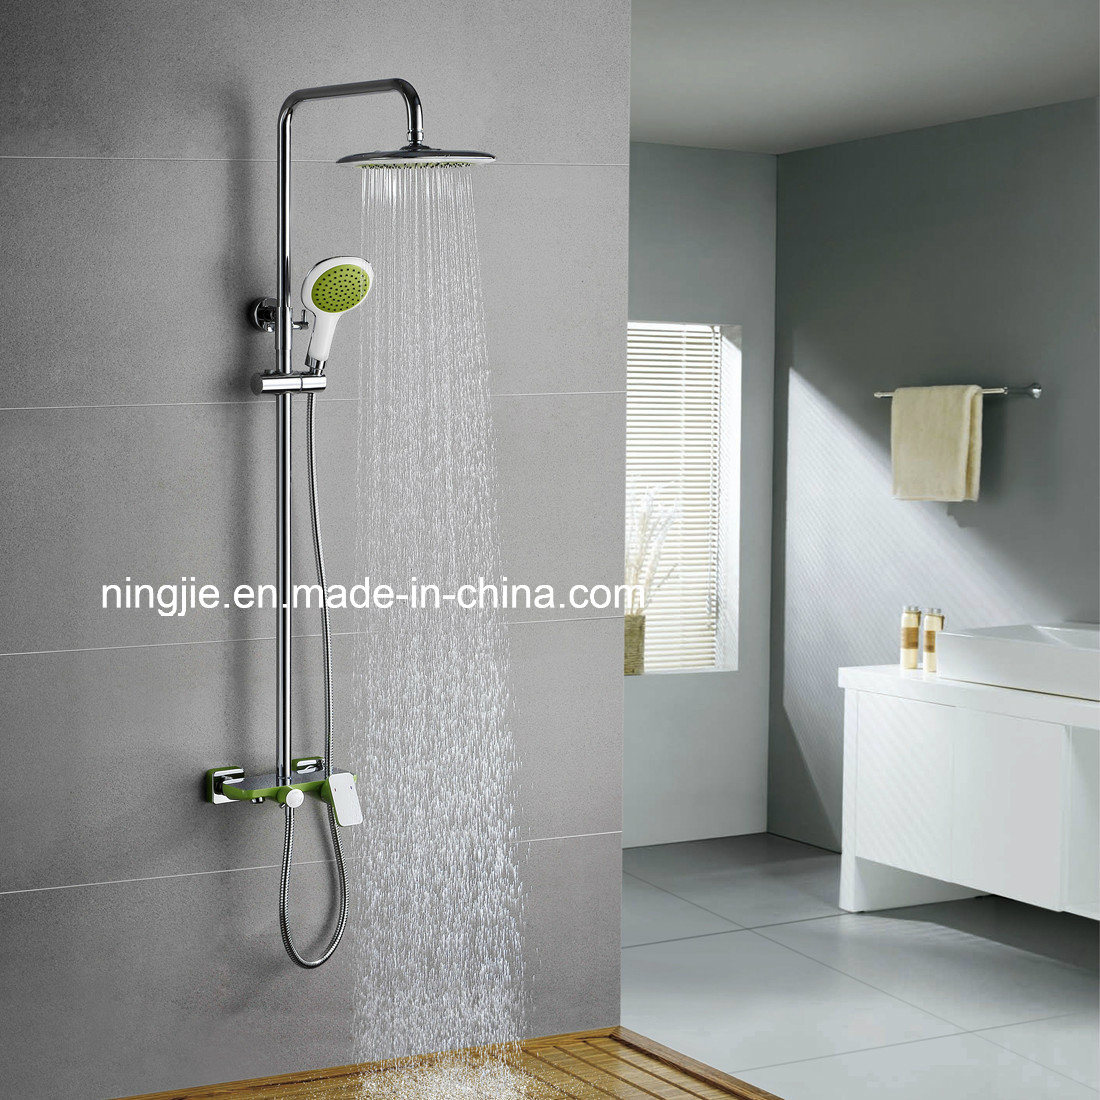 Elegant China Family Bathroom Wall Mounted Raining Shower Mixed (13066YC)   China  Shower Mixer, Bathroom Shower Set